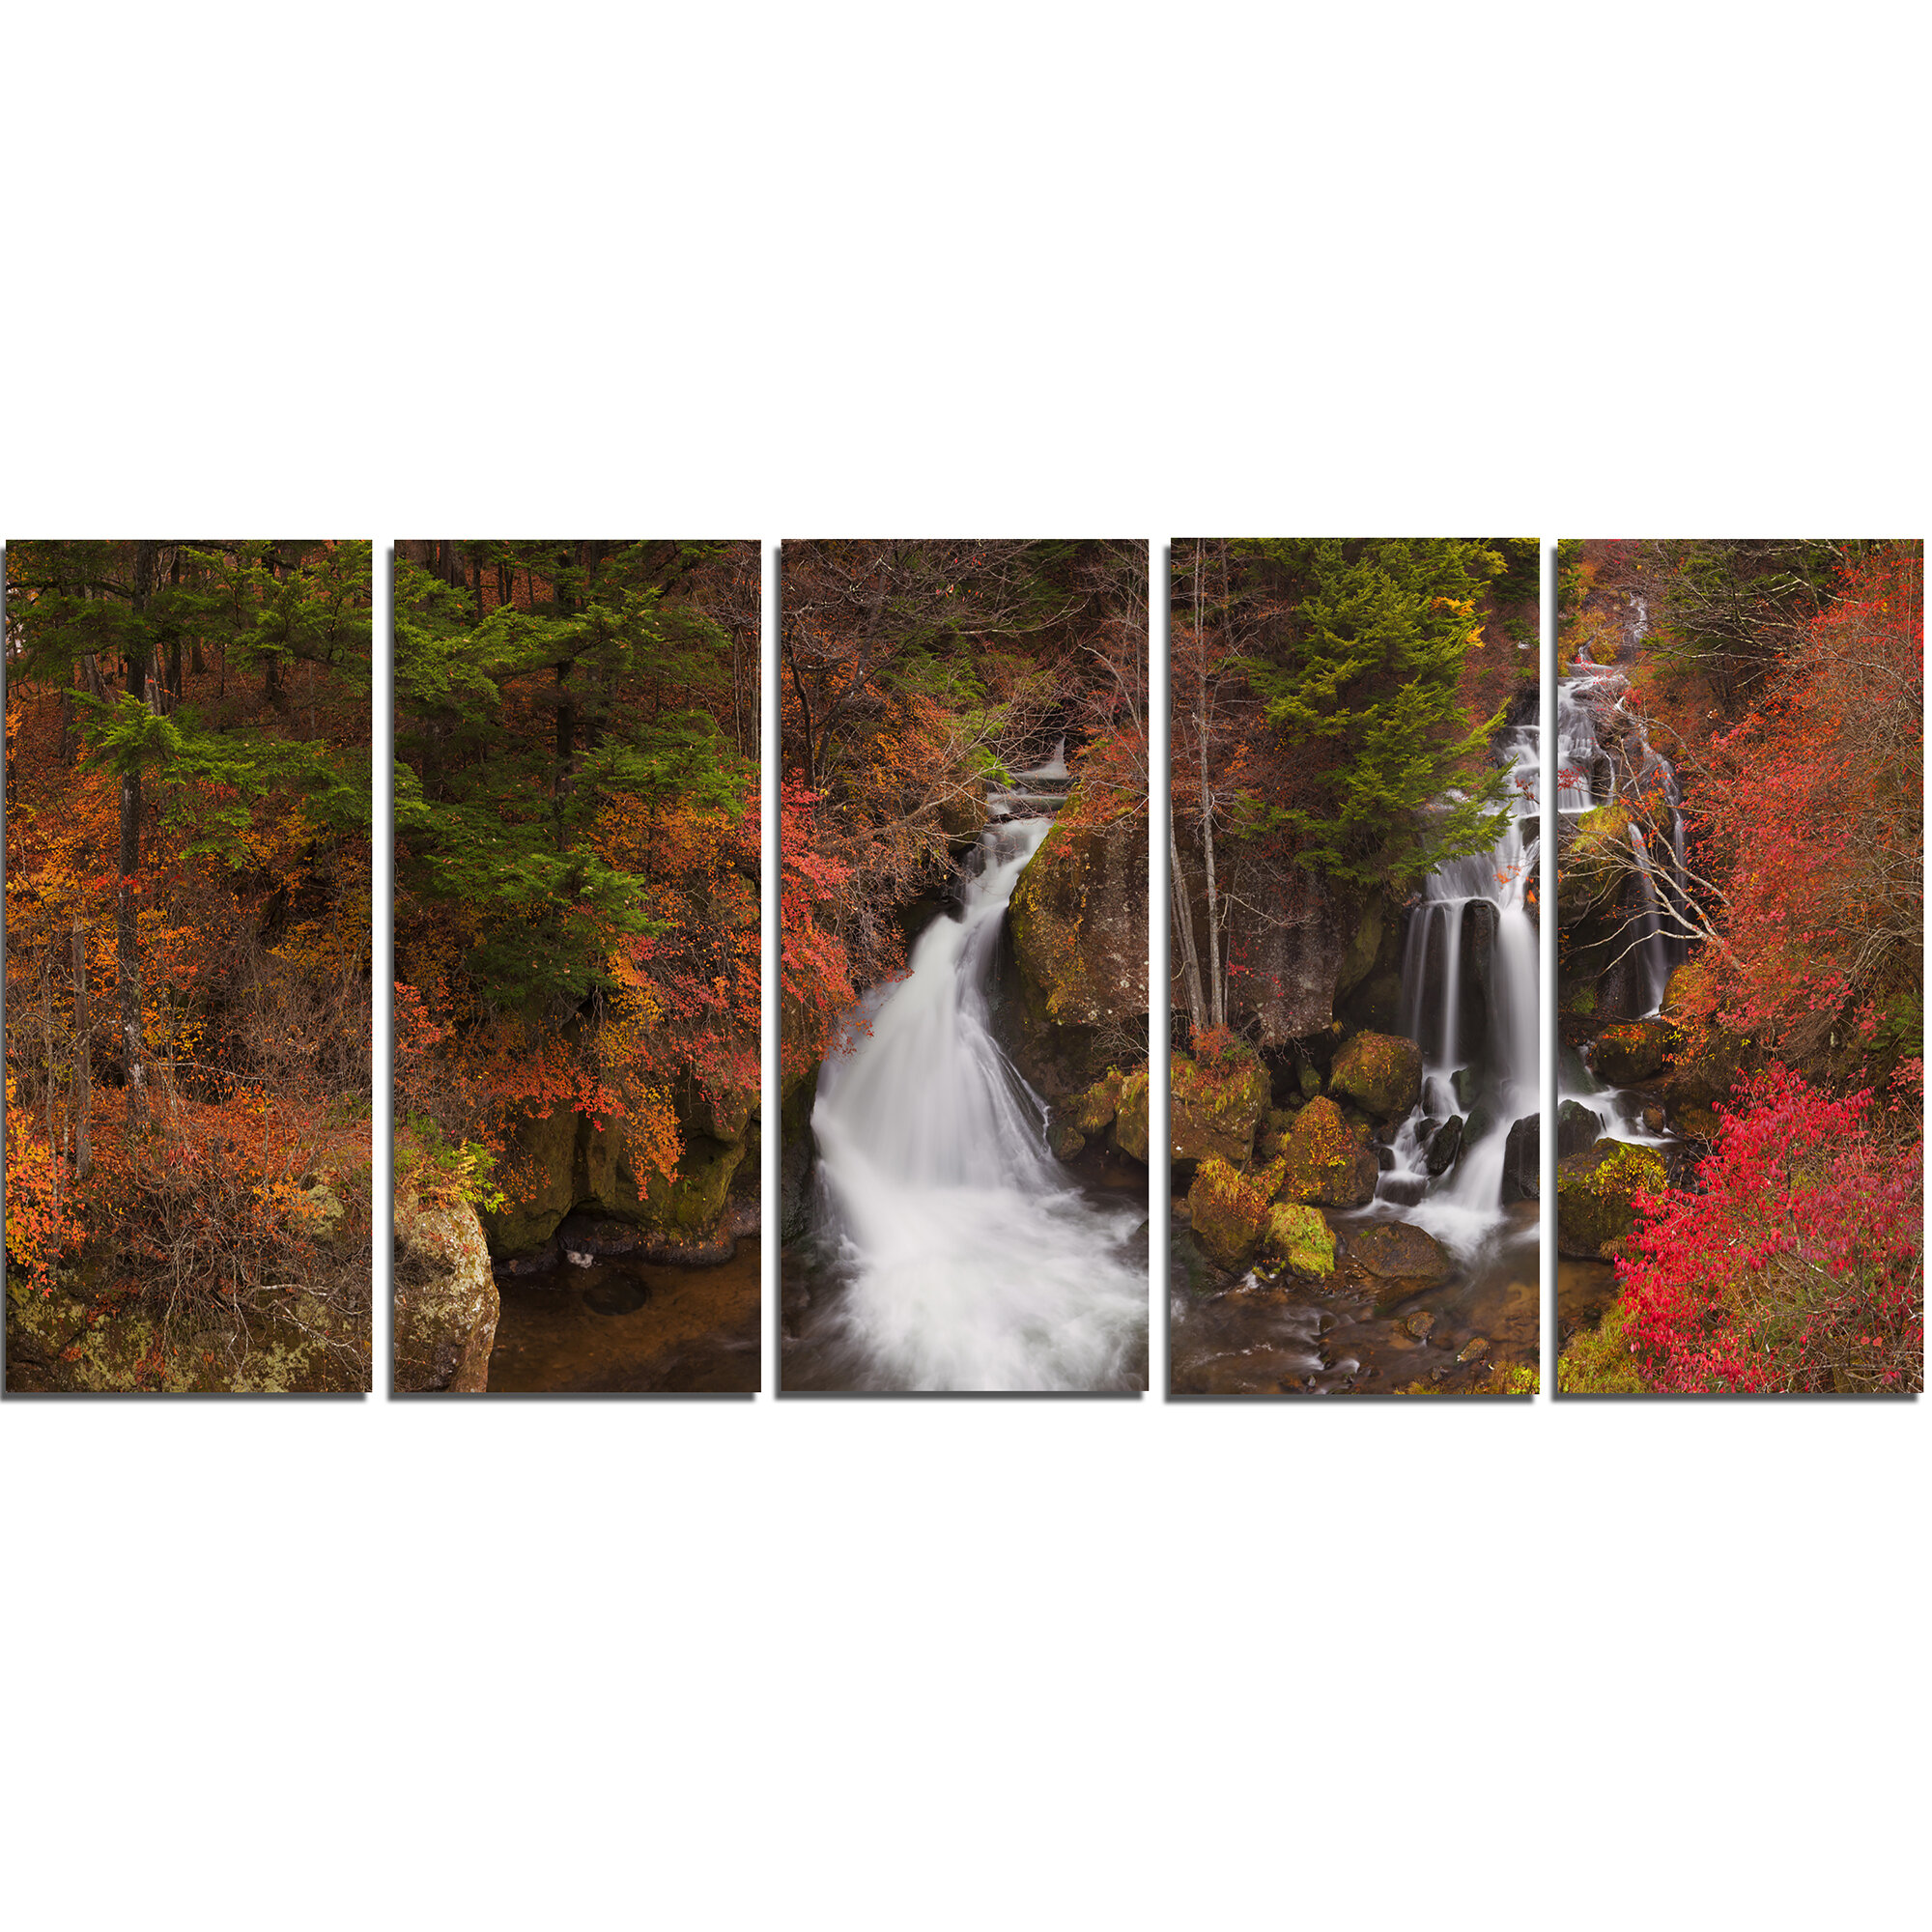 Designart Ryuzu Falls Near Nikko Japan Photographic Print Multi Piece Image On Canvas Wayfair